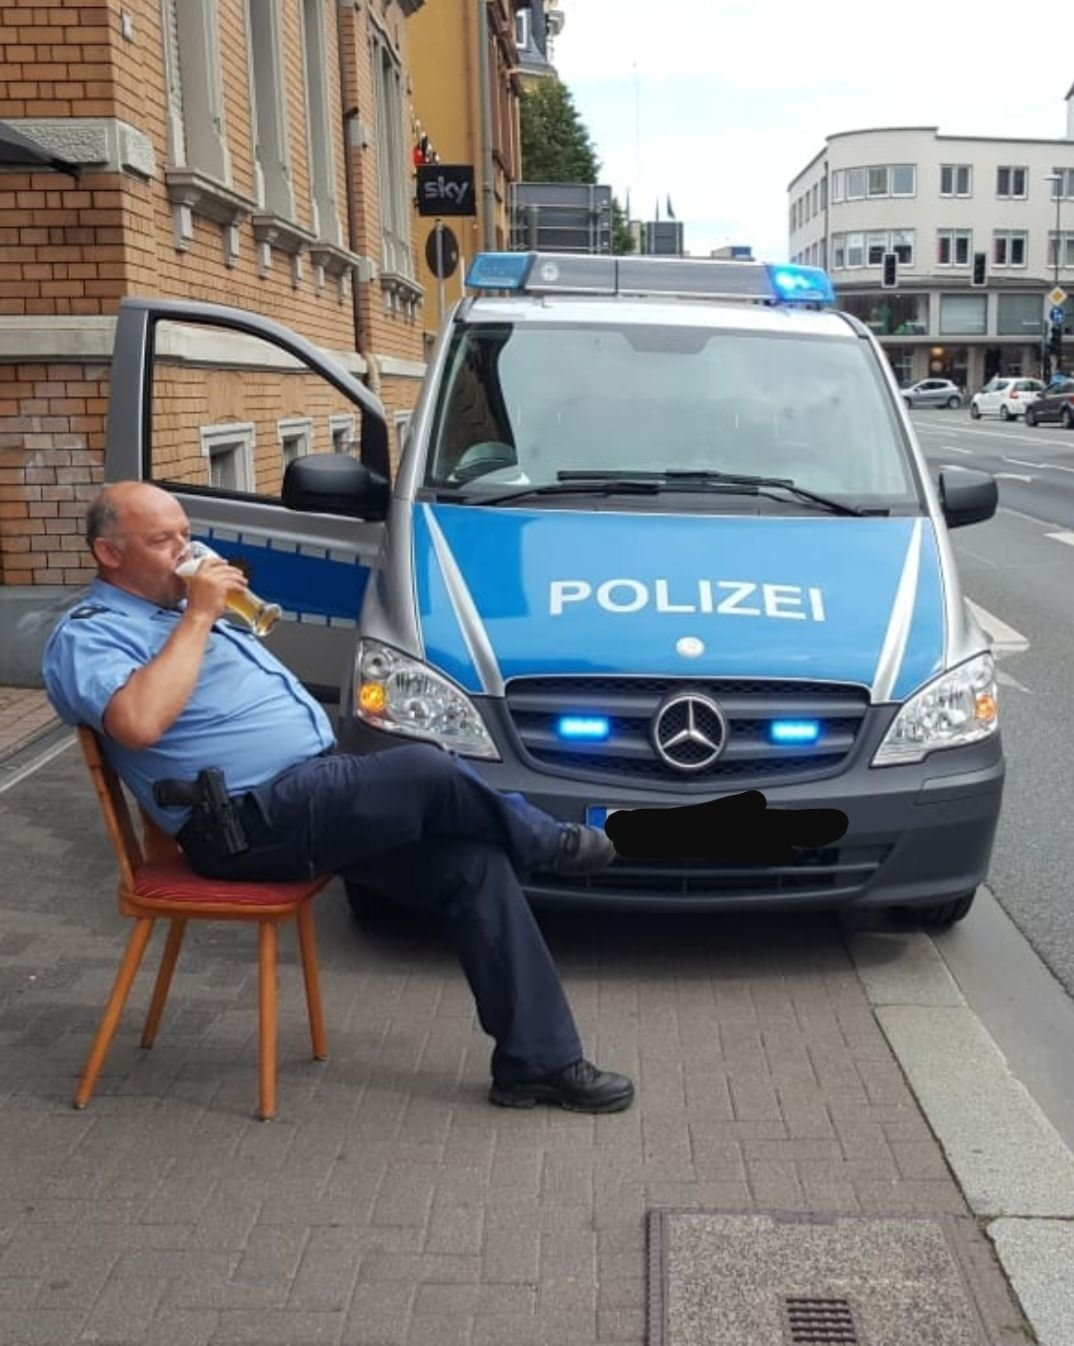 A German policeman in his natural environment